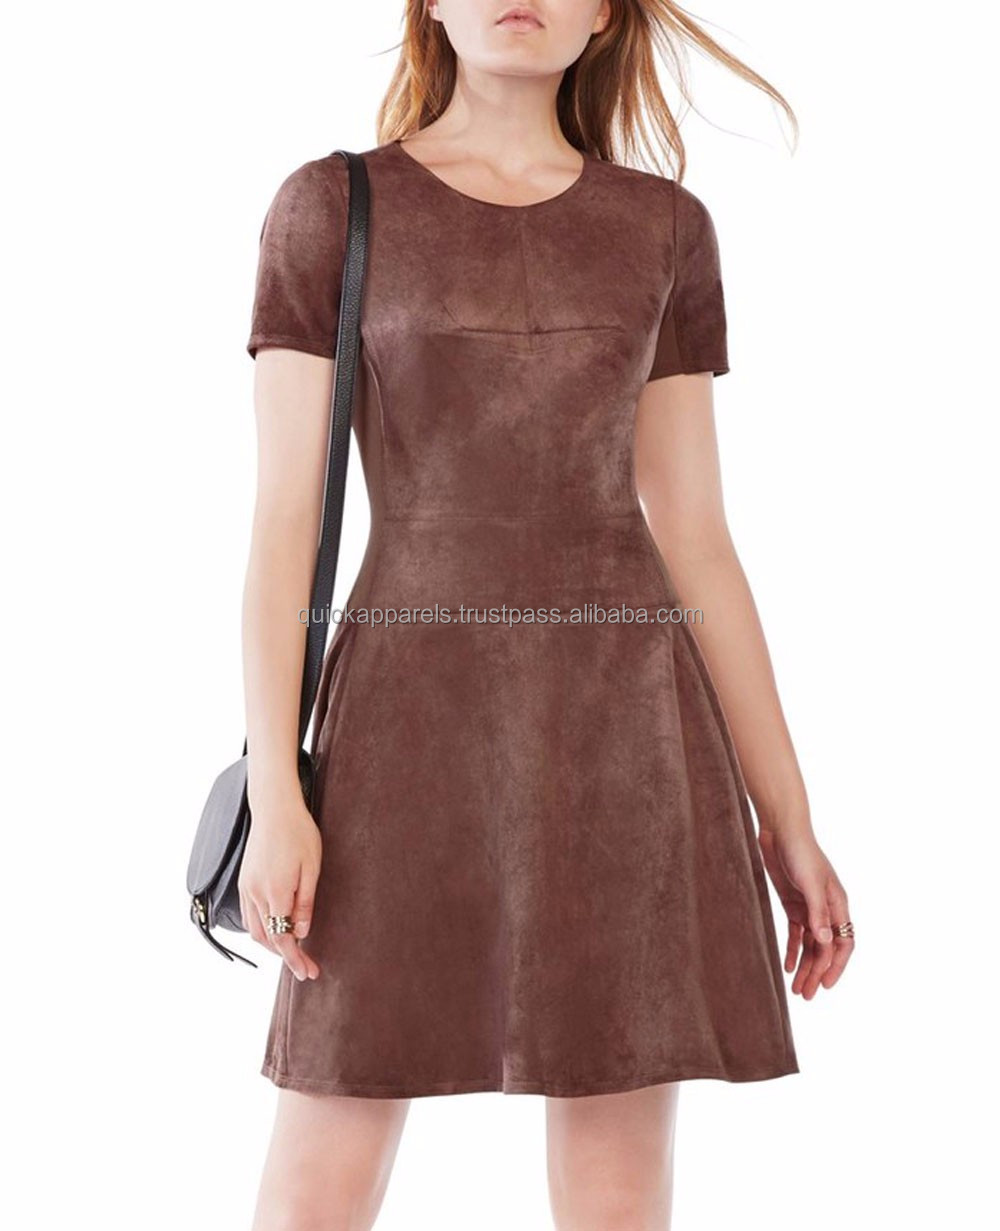 Hot sale mini ladies bondage dress leather,leather dresses for women